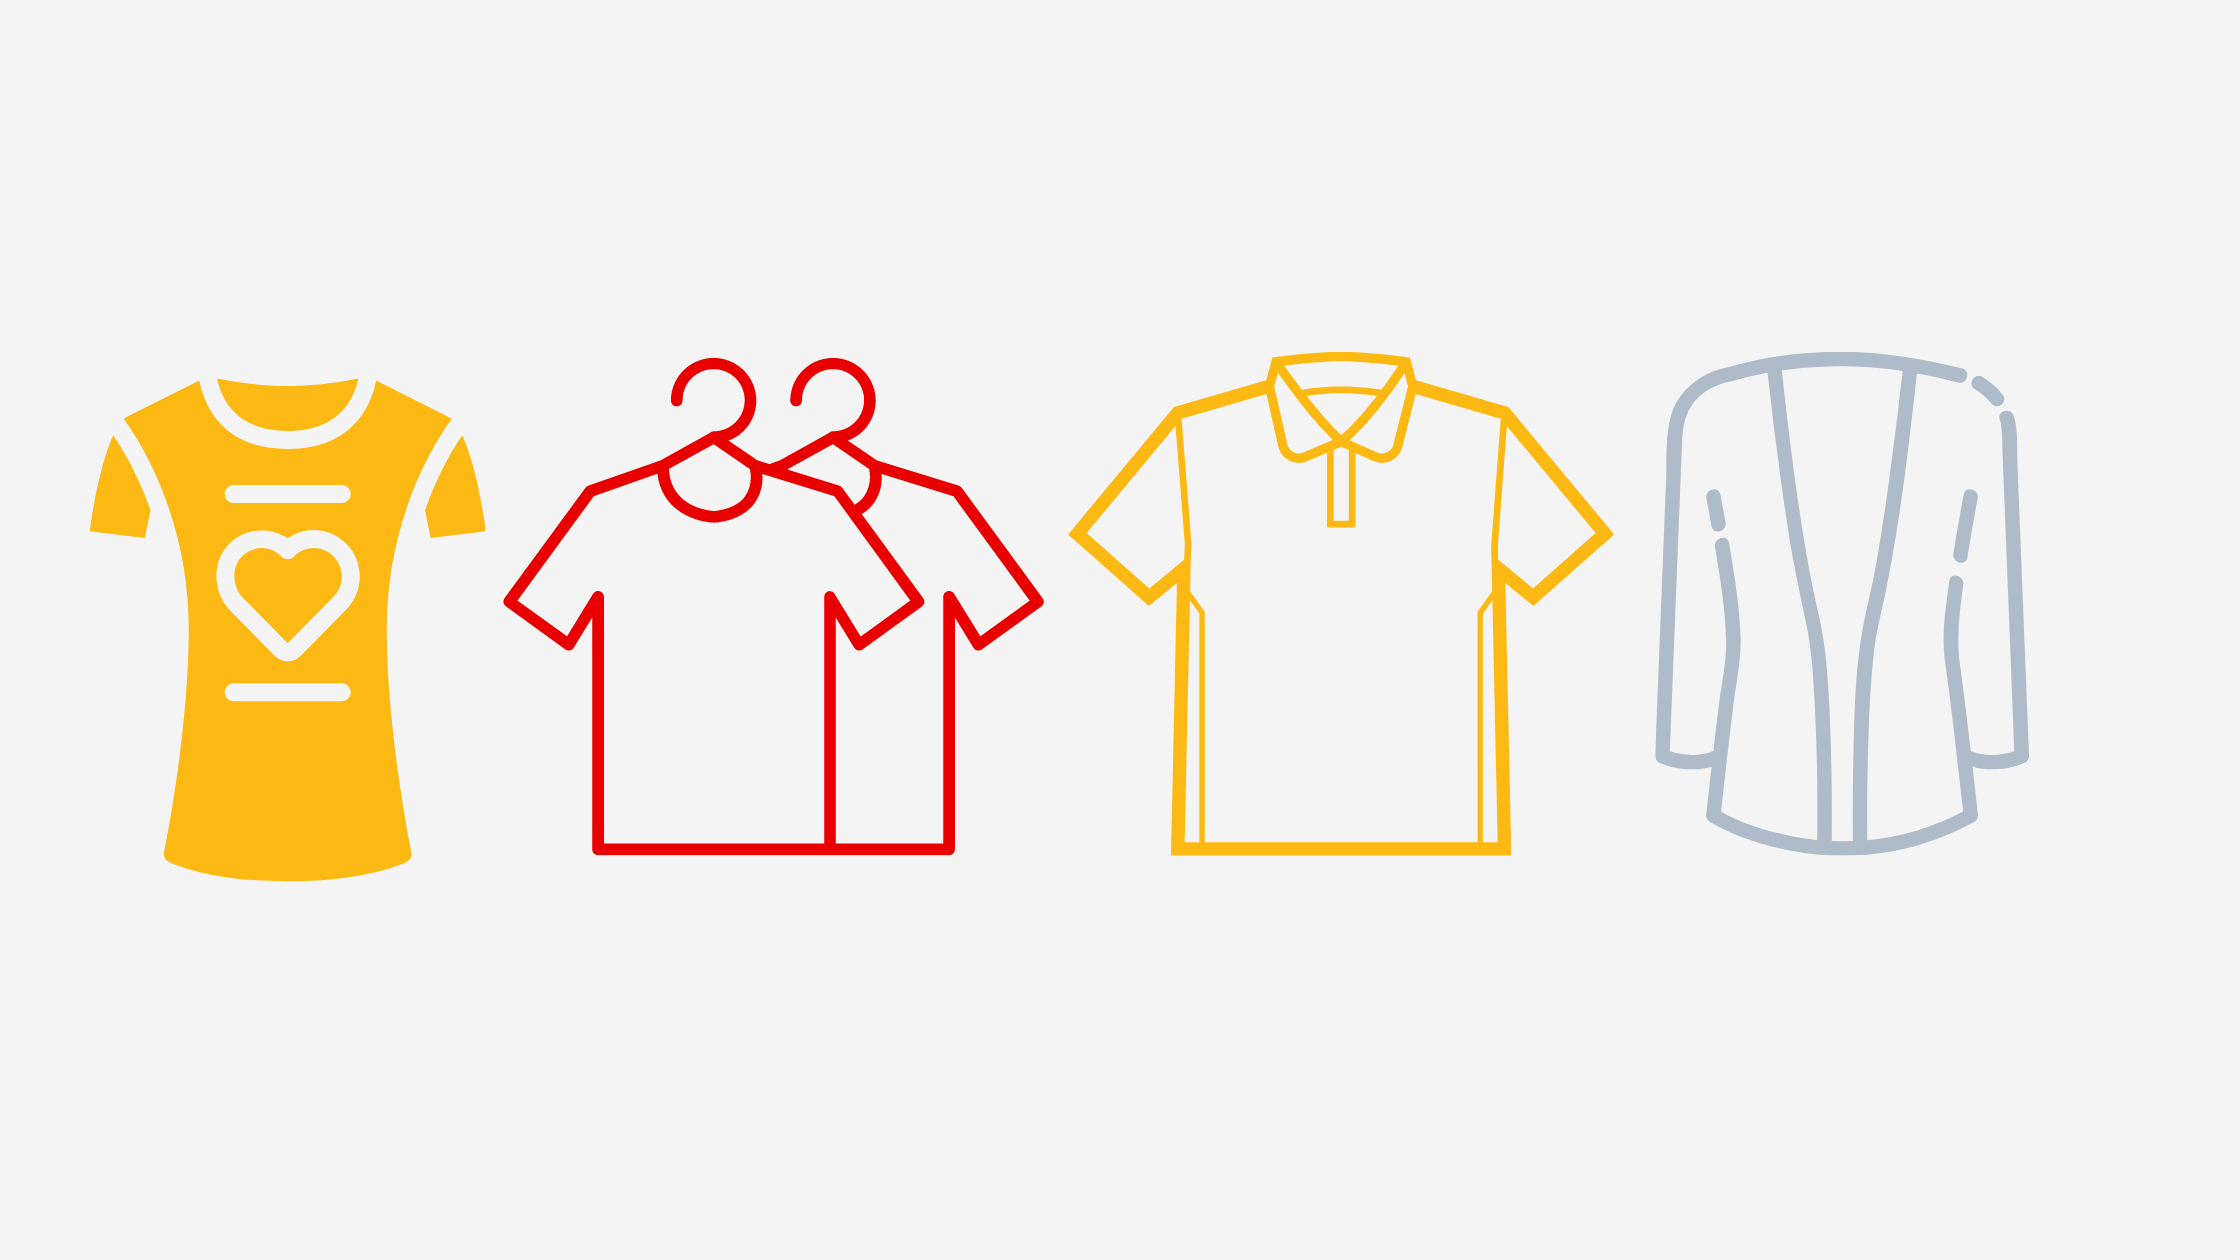 Graphics of four shirts